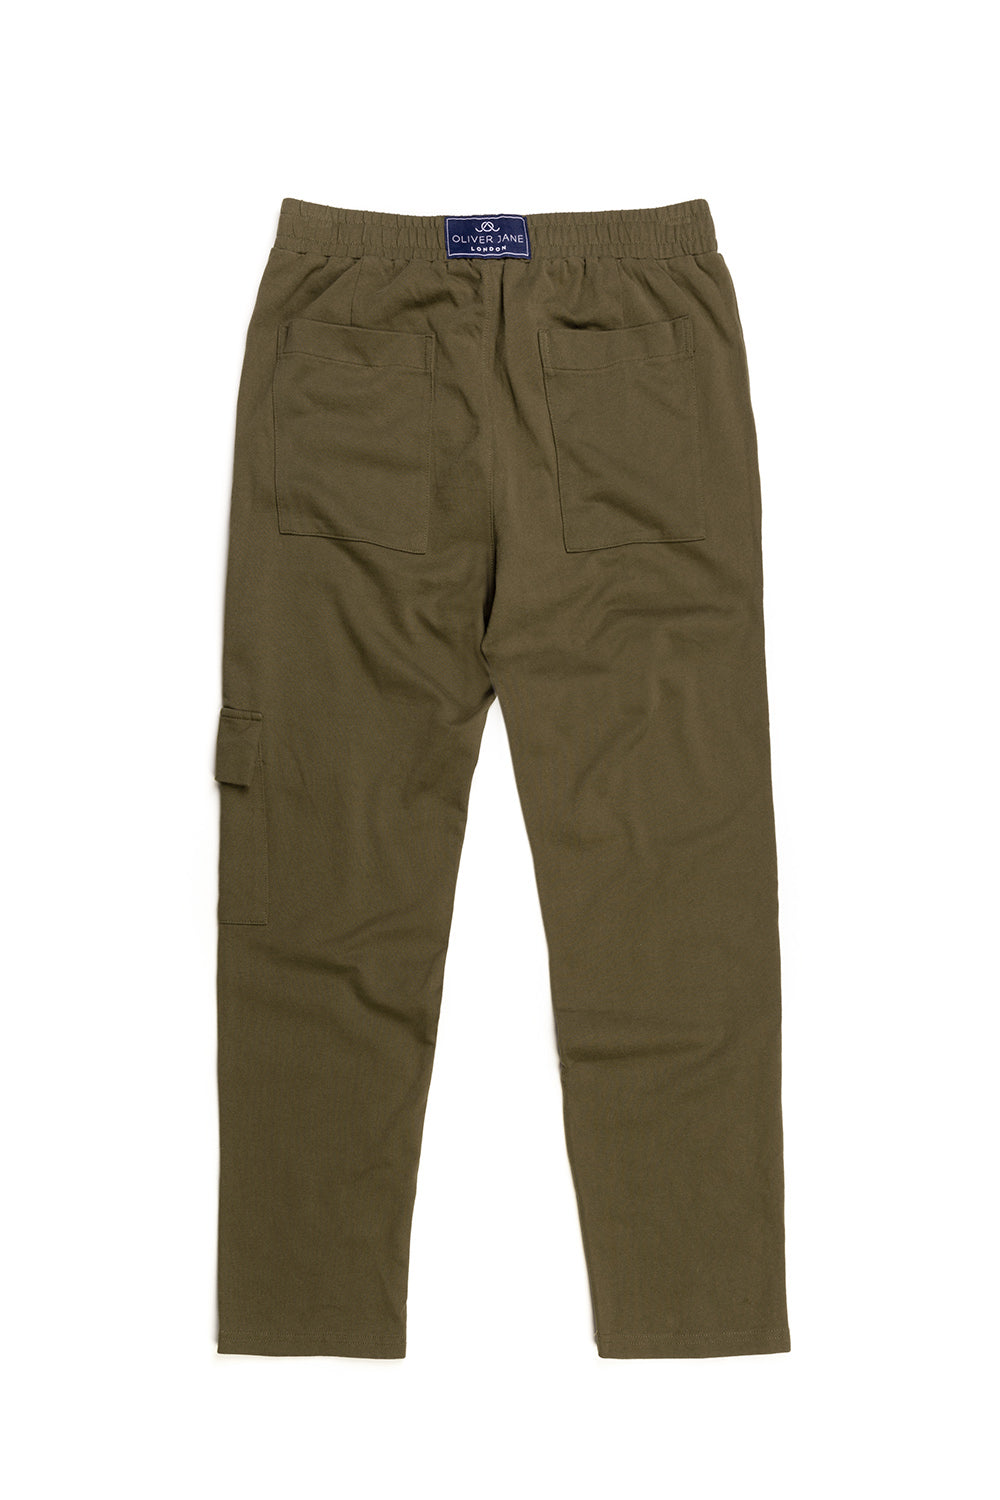 The Khaki Cargo Beach Pant